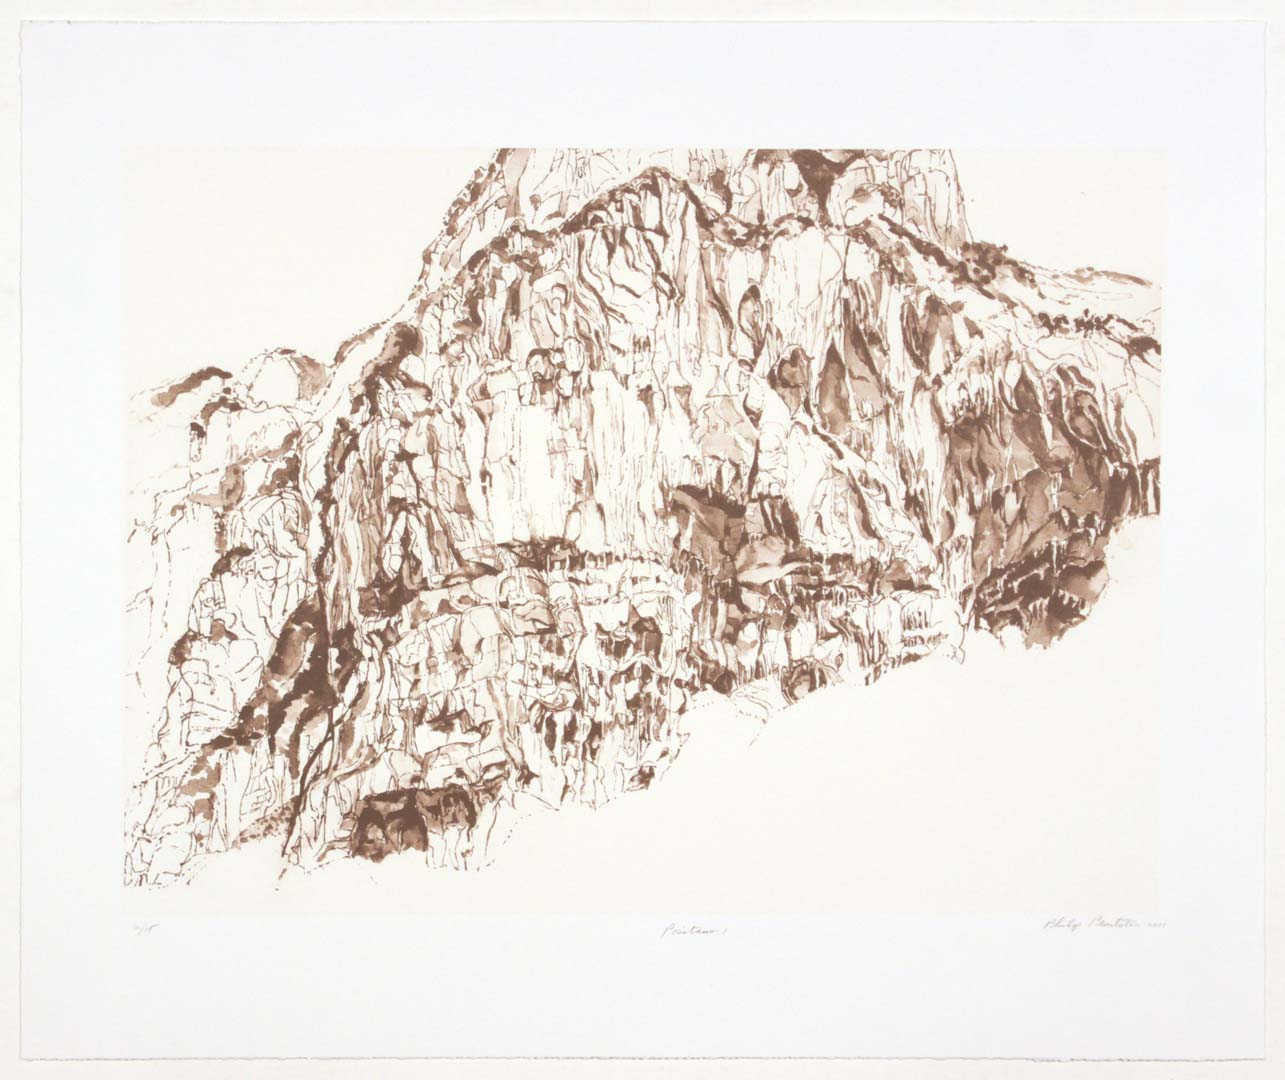 2011 Positano #1 Lithograph on Paper 20.625 x 24.625